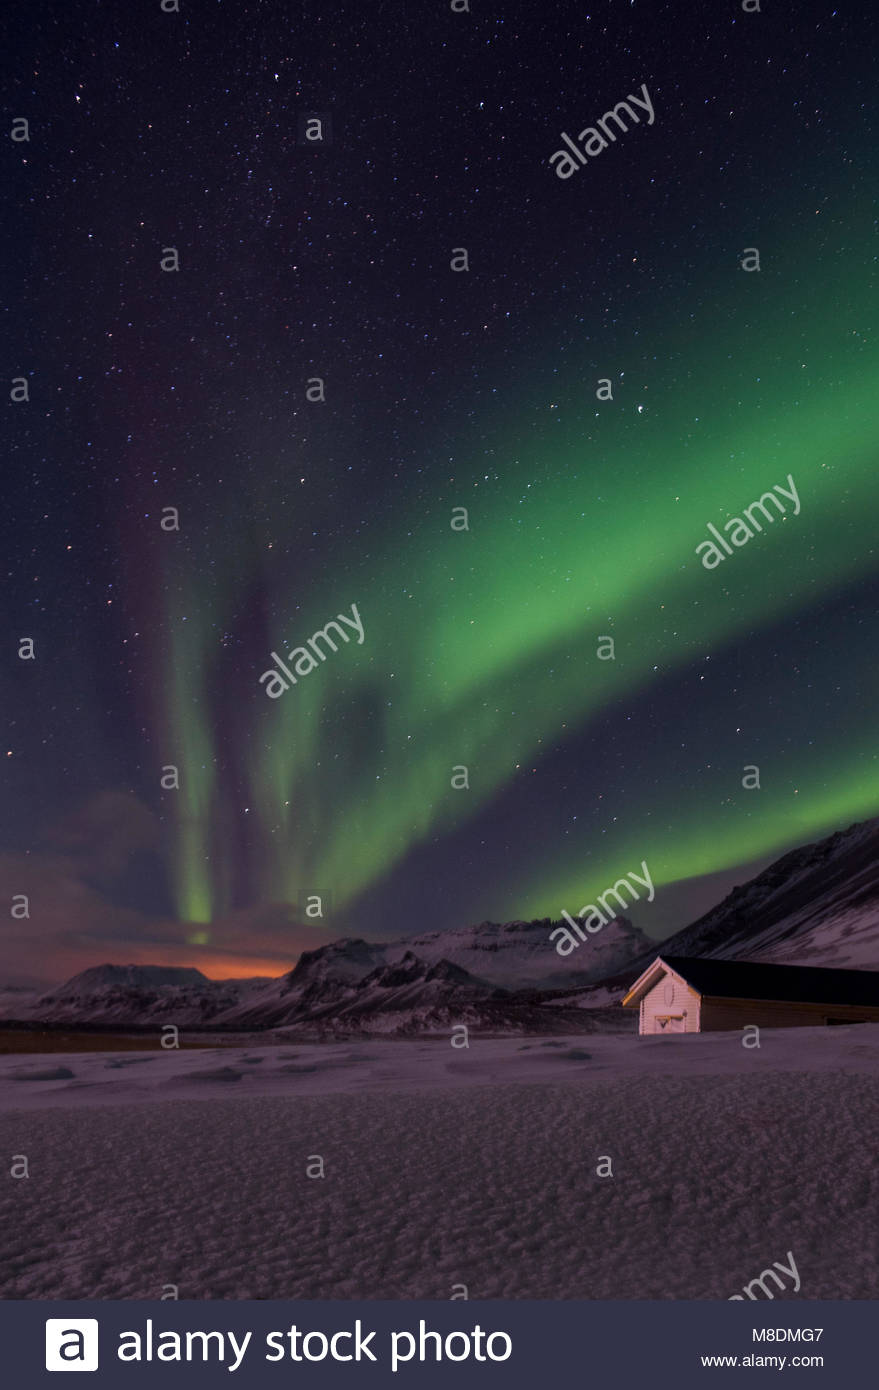 Aurora borealis over snow covered landscape, Snaefellsnes peninsula, Iceland, Europe - Stock Image